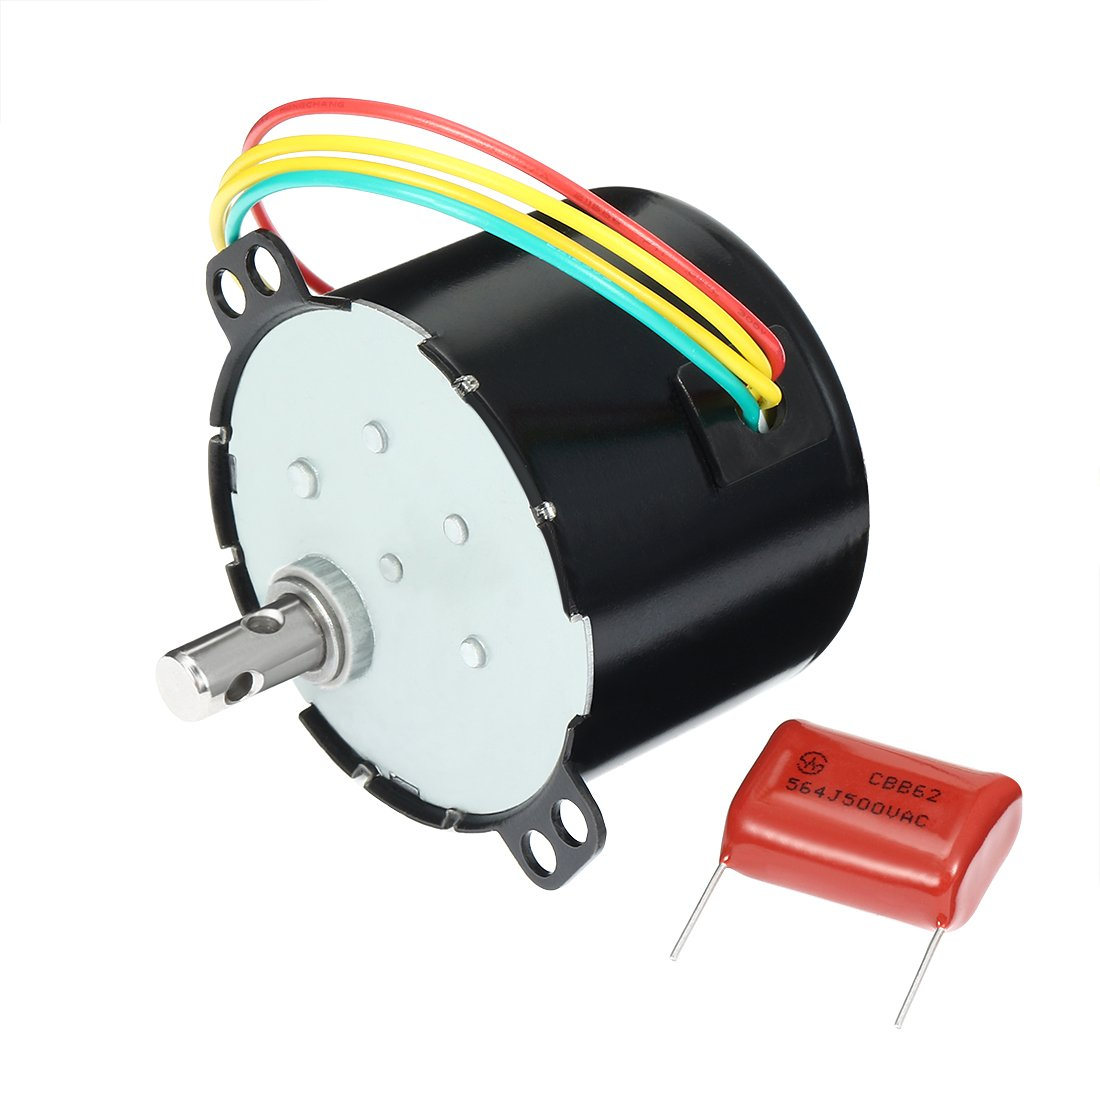 uxcell Synchronous Motor AC 110V 60Hz 6W 4/4.8RPM Output Speed Reduction Geared Box